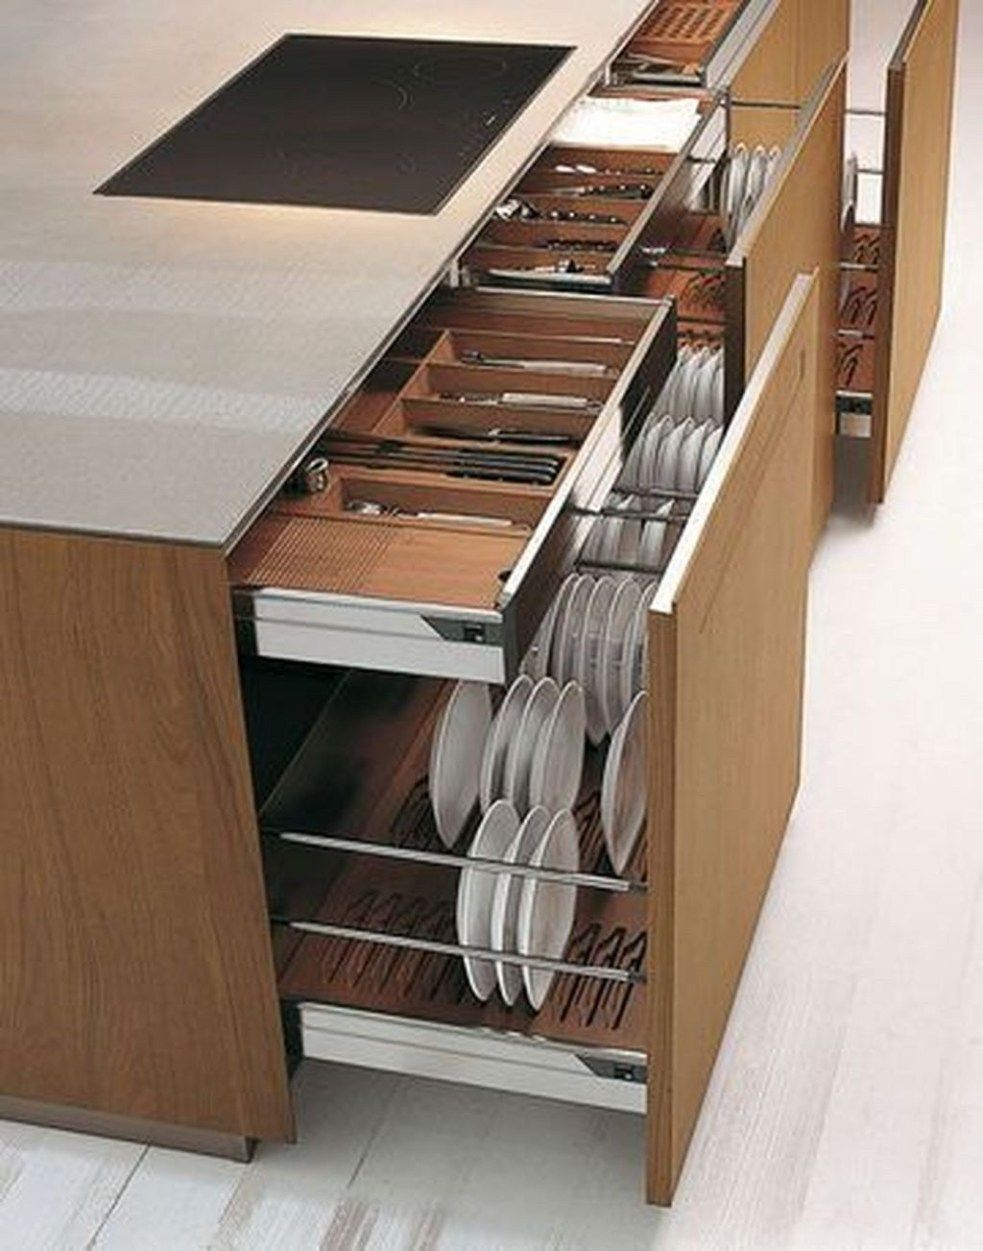 affordable kitchen storage ideas 09 kitchen cabinet on clever ideas for diy kitchen cabinet organization tips for organizers id=36658